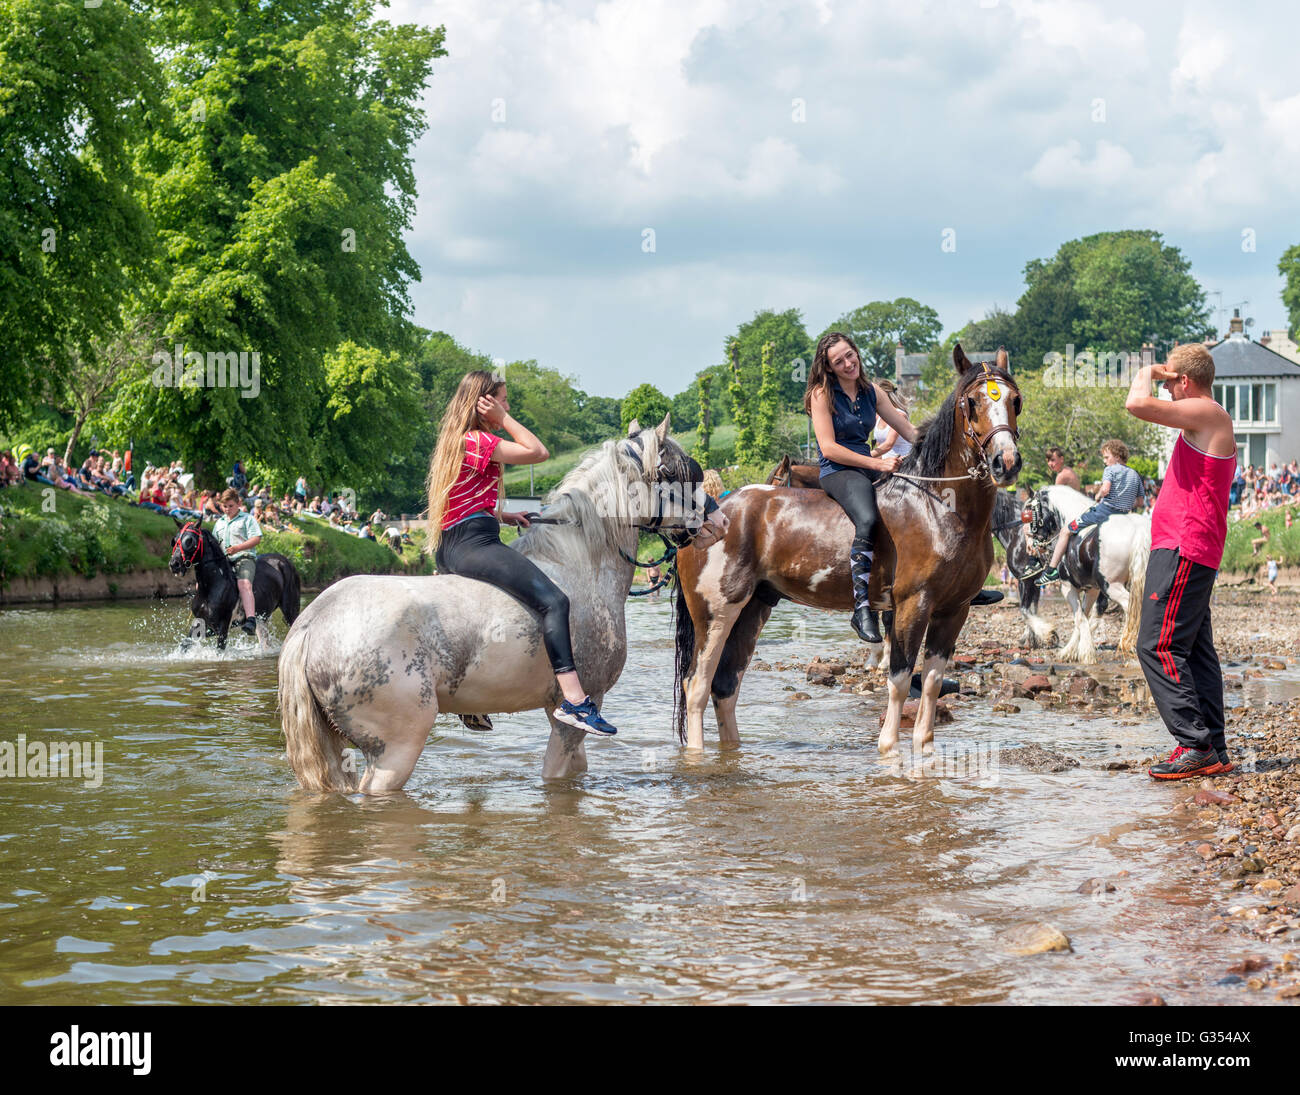 Travellers washing riding their horses in the river Eden at Appleby Horse Fair, Cumbria, UK. 2016 - Stock Image